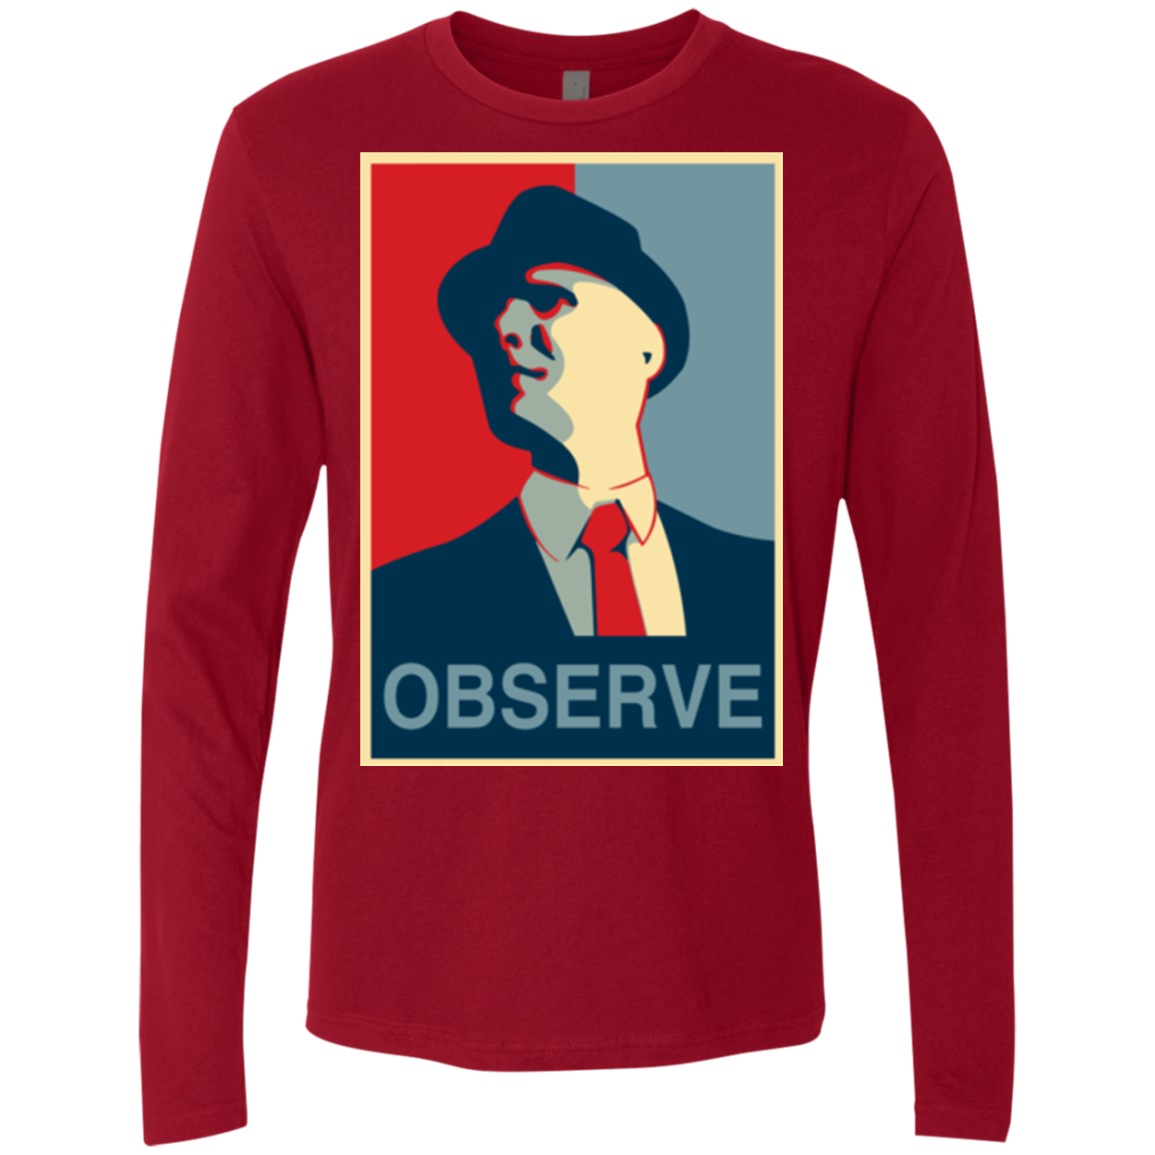 Observe Men's Premium Long Sleeve